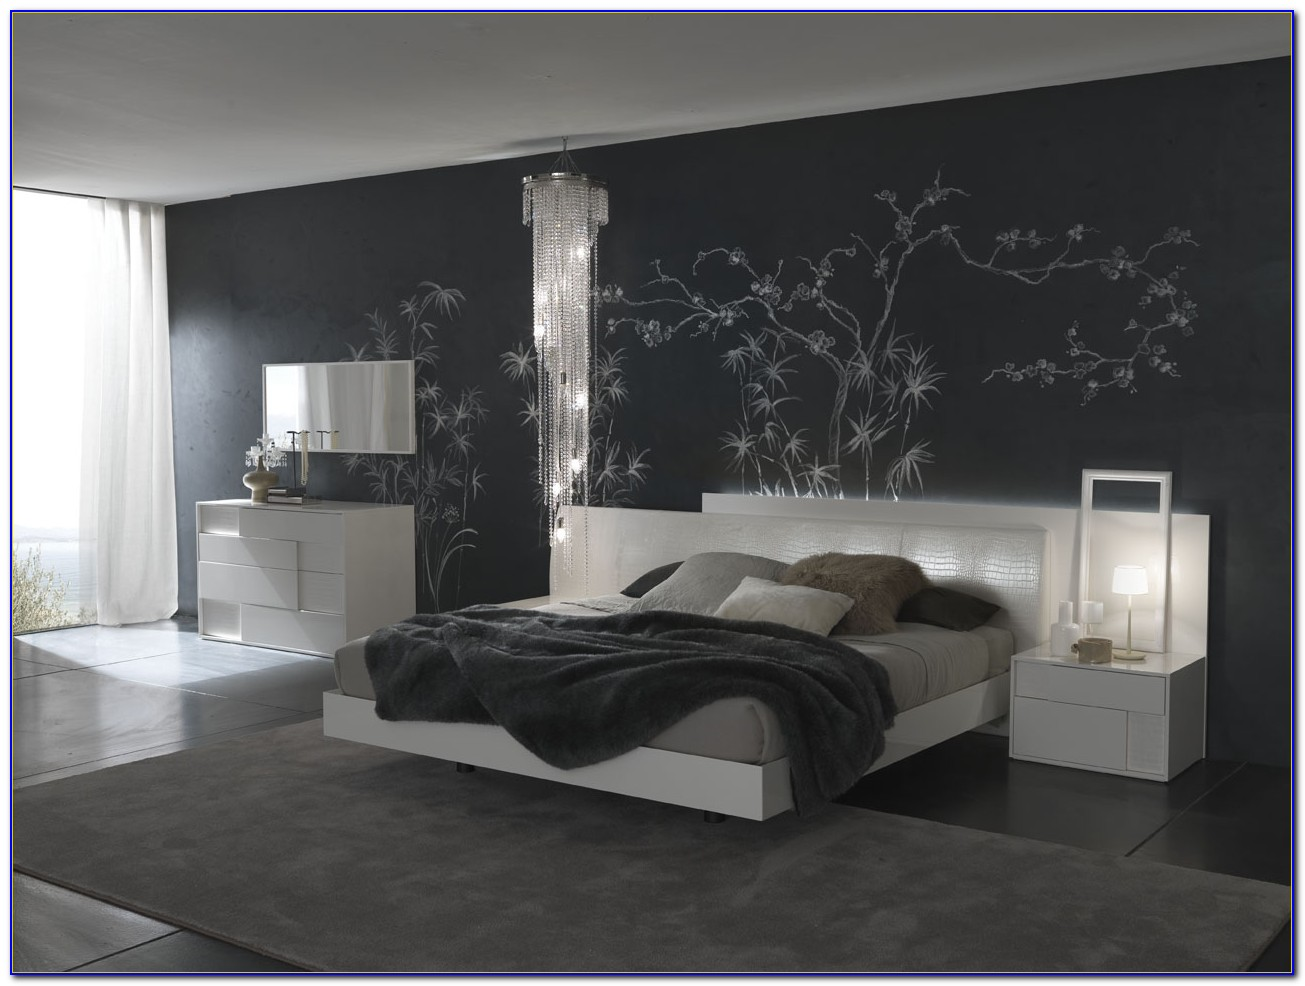 Wall Decorations For Bedroom Diy